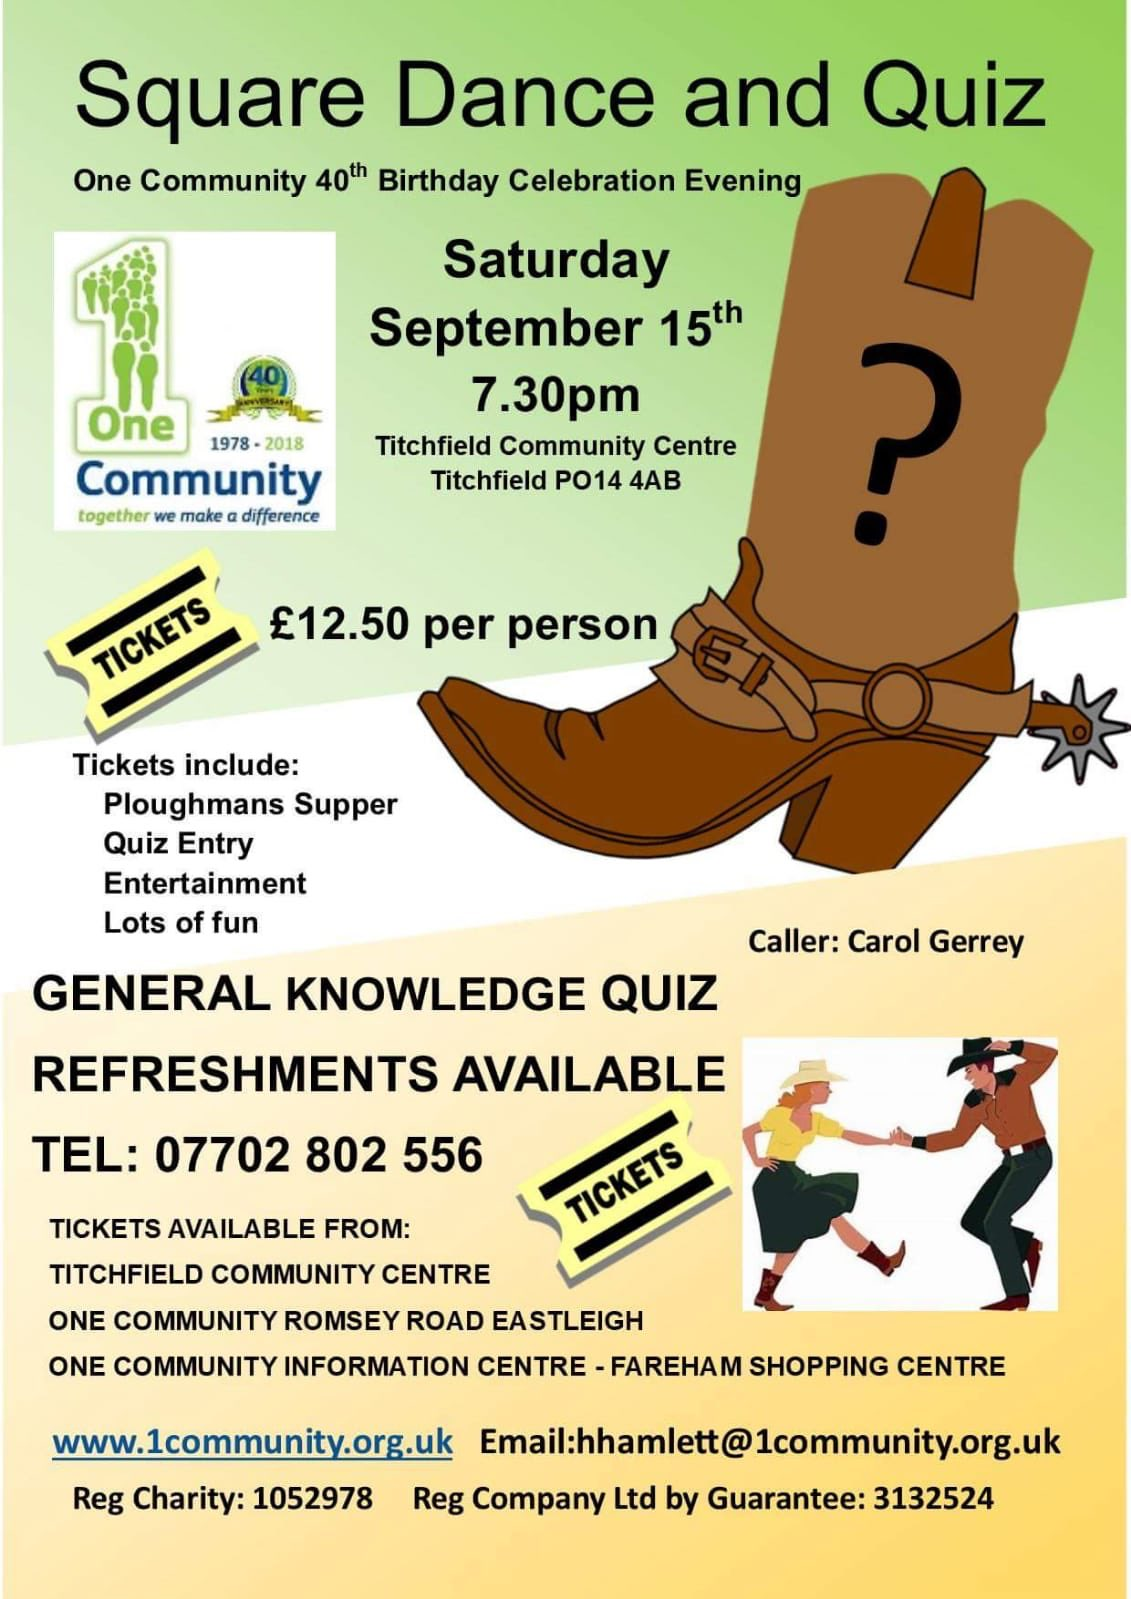 Square Dance and Quiz by One Community